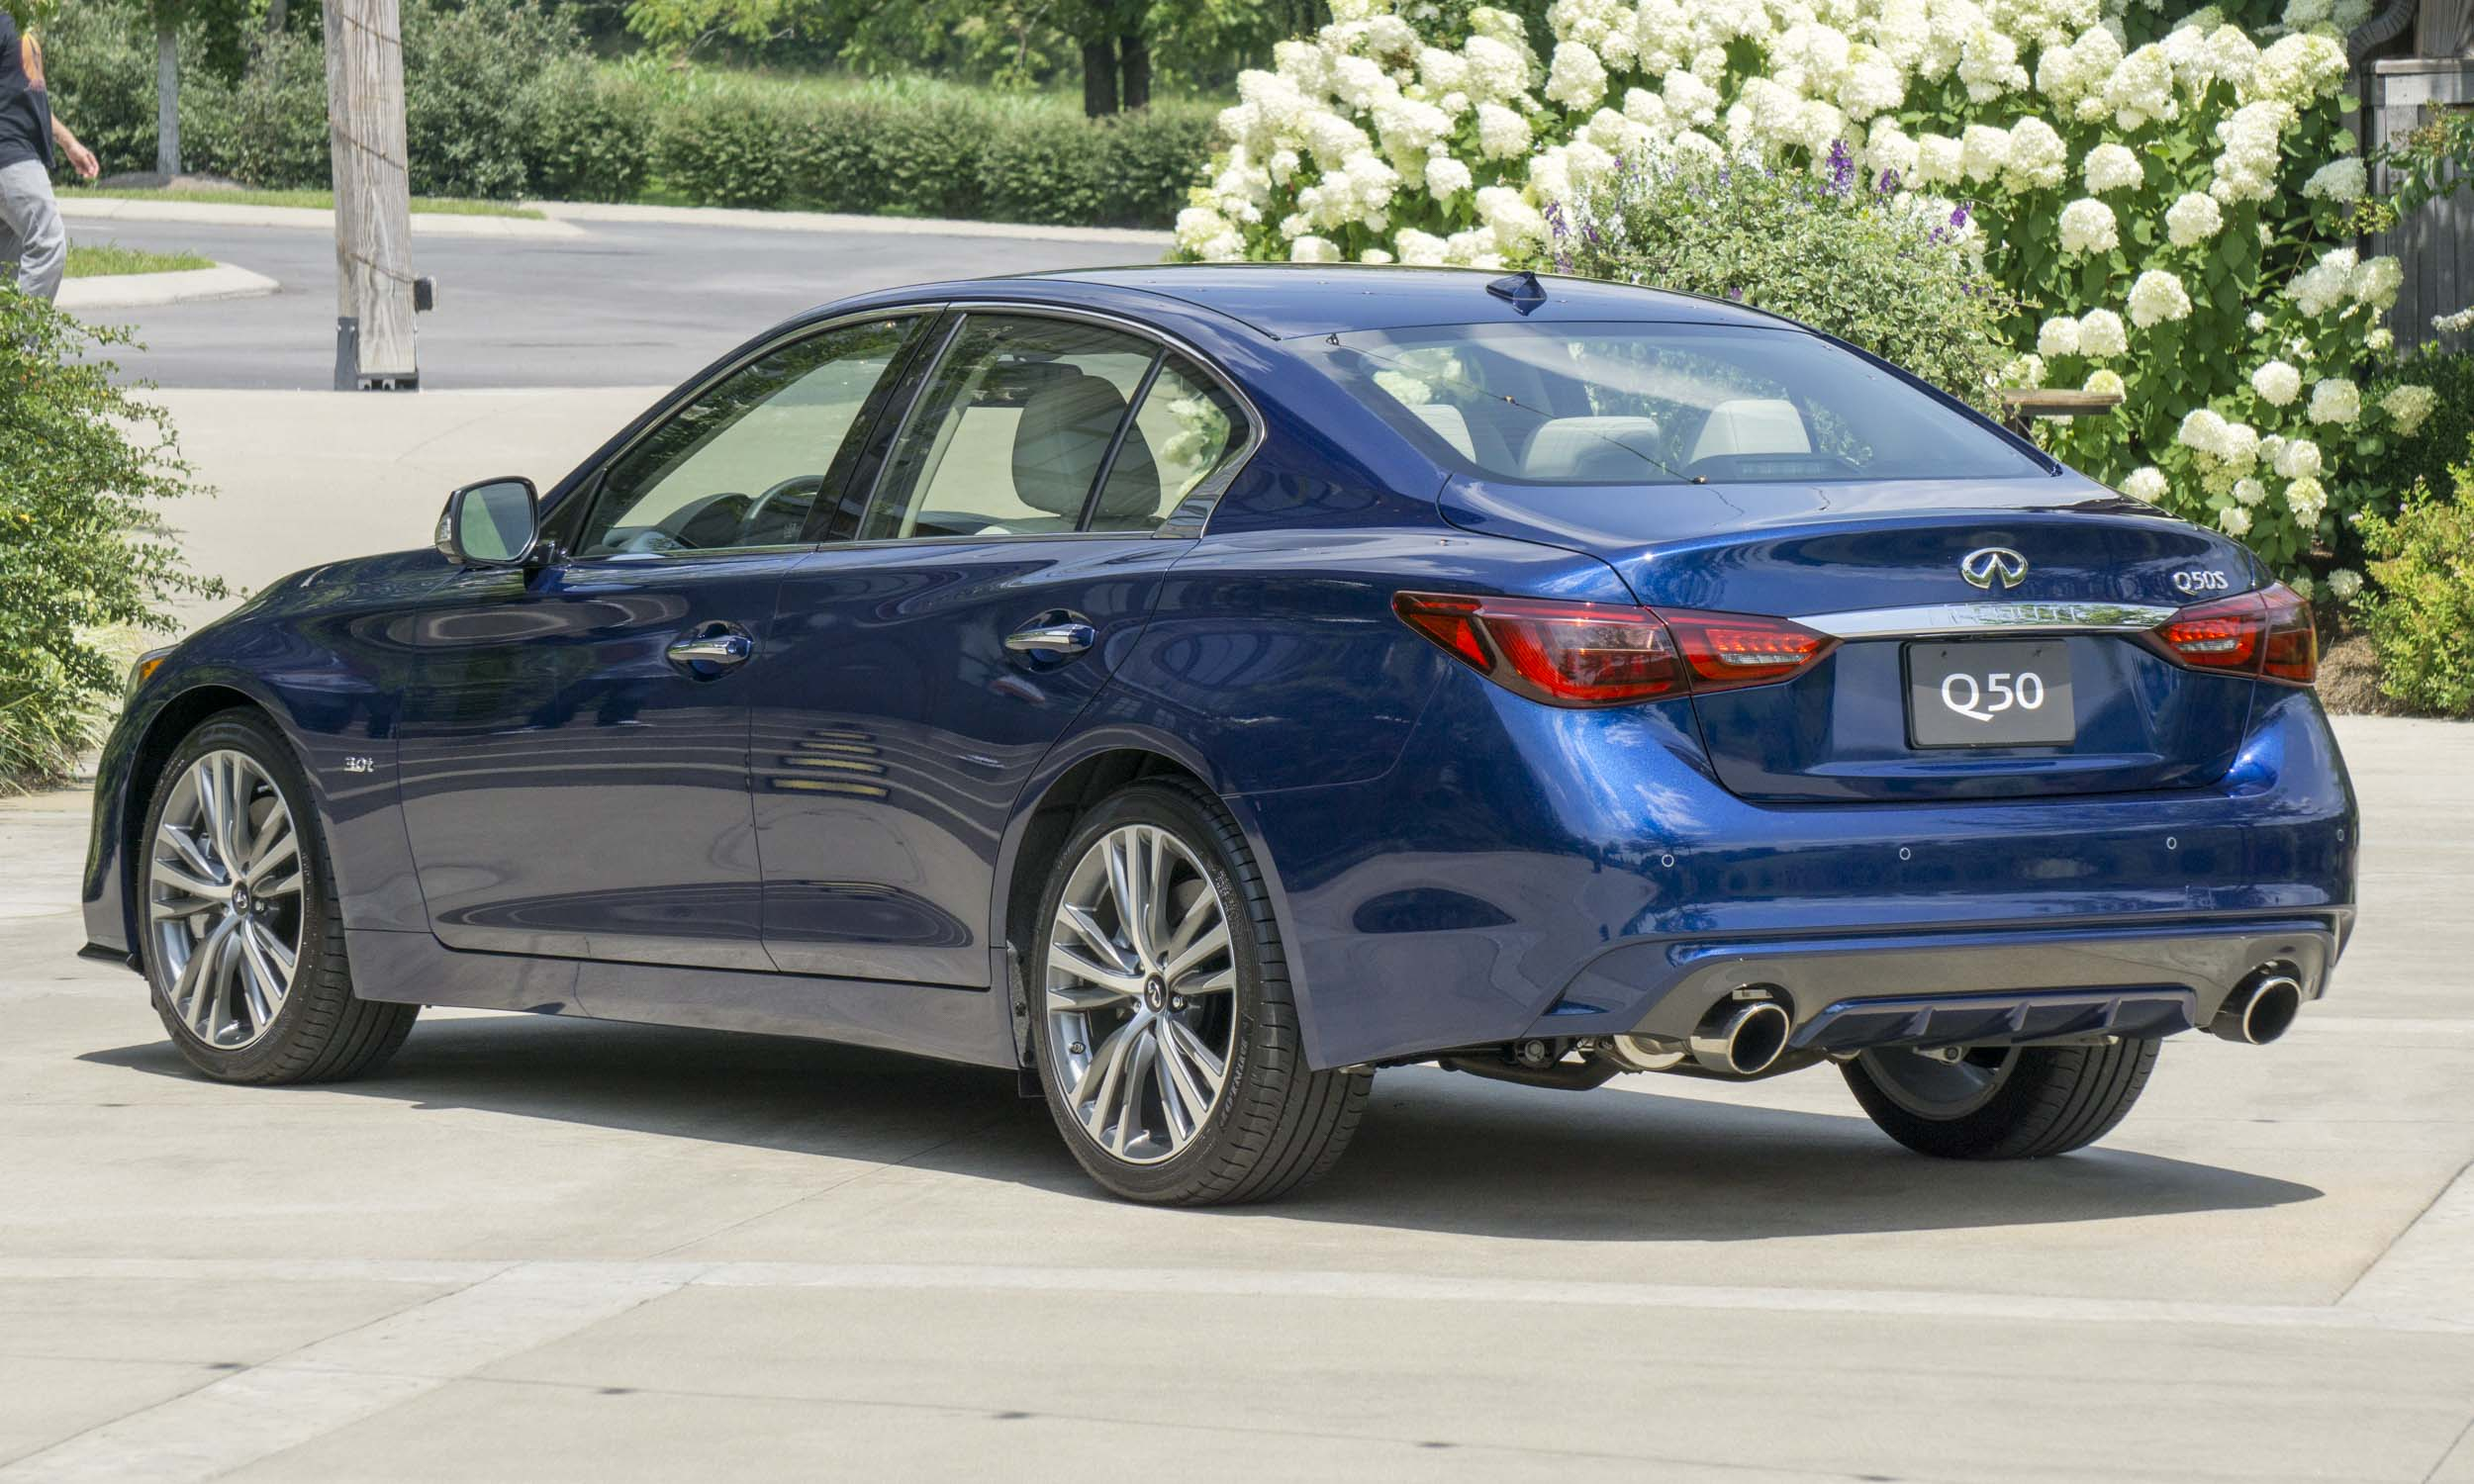 Perry Stern Automotive Content Experience Q50 Hybrid Luxe